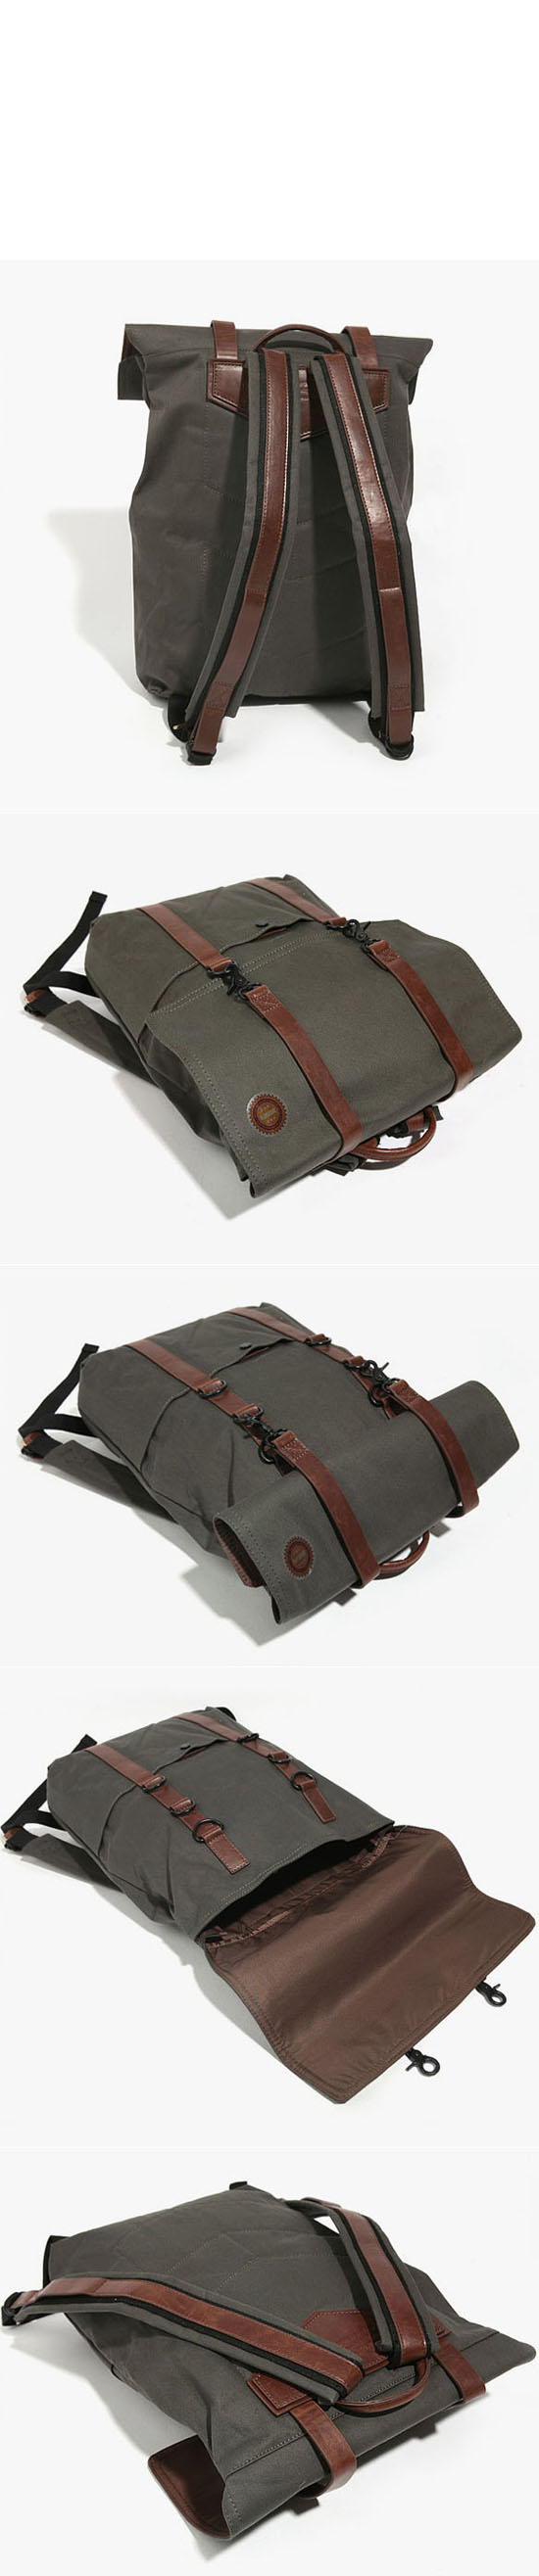 Water-proof Lining Military Canoe Pack-Bag 41